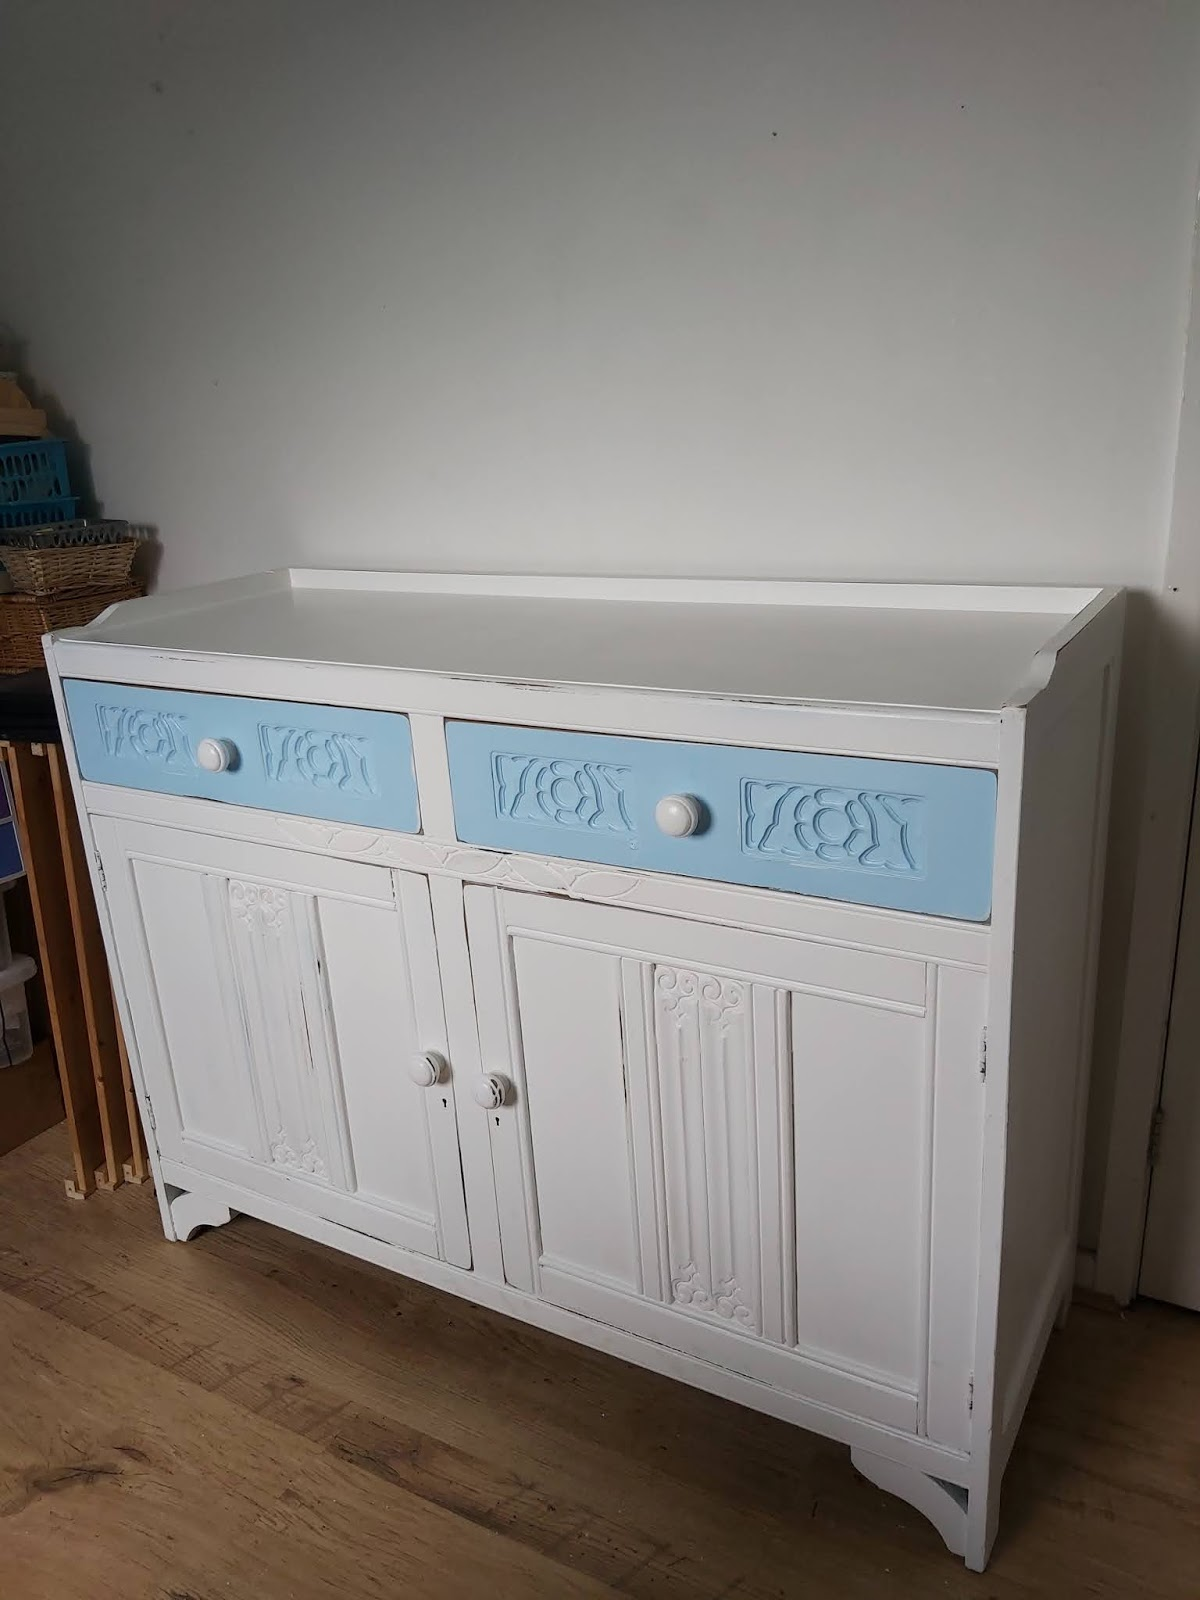 Handmade Harbour Upcycled Sideboard